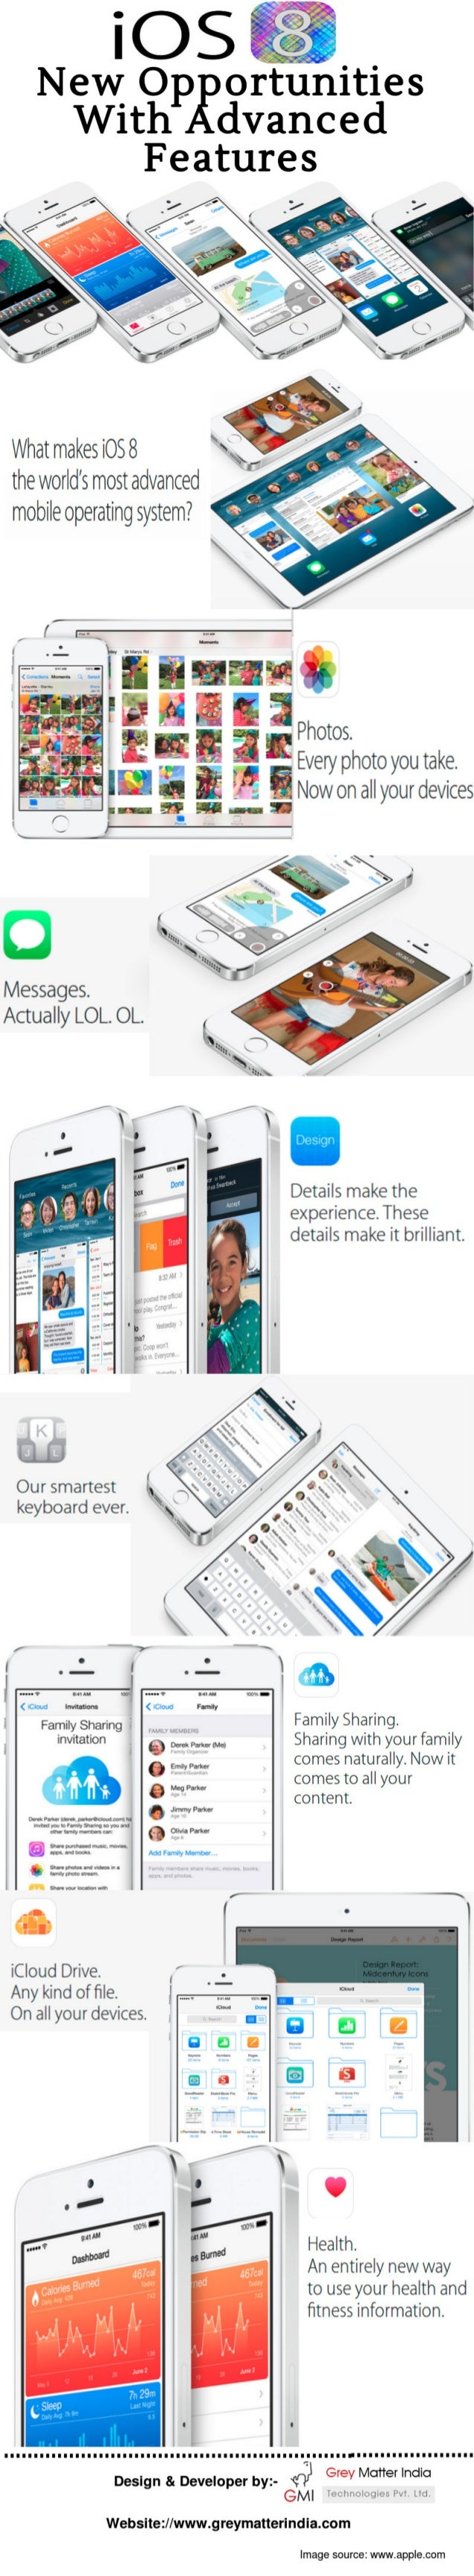 iOS 8 New Opportunities With Advanced Features